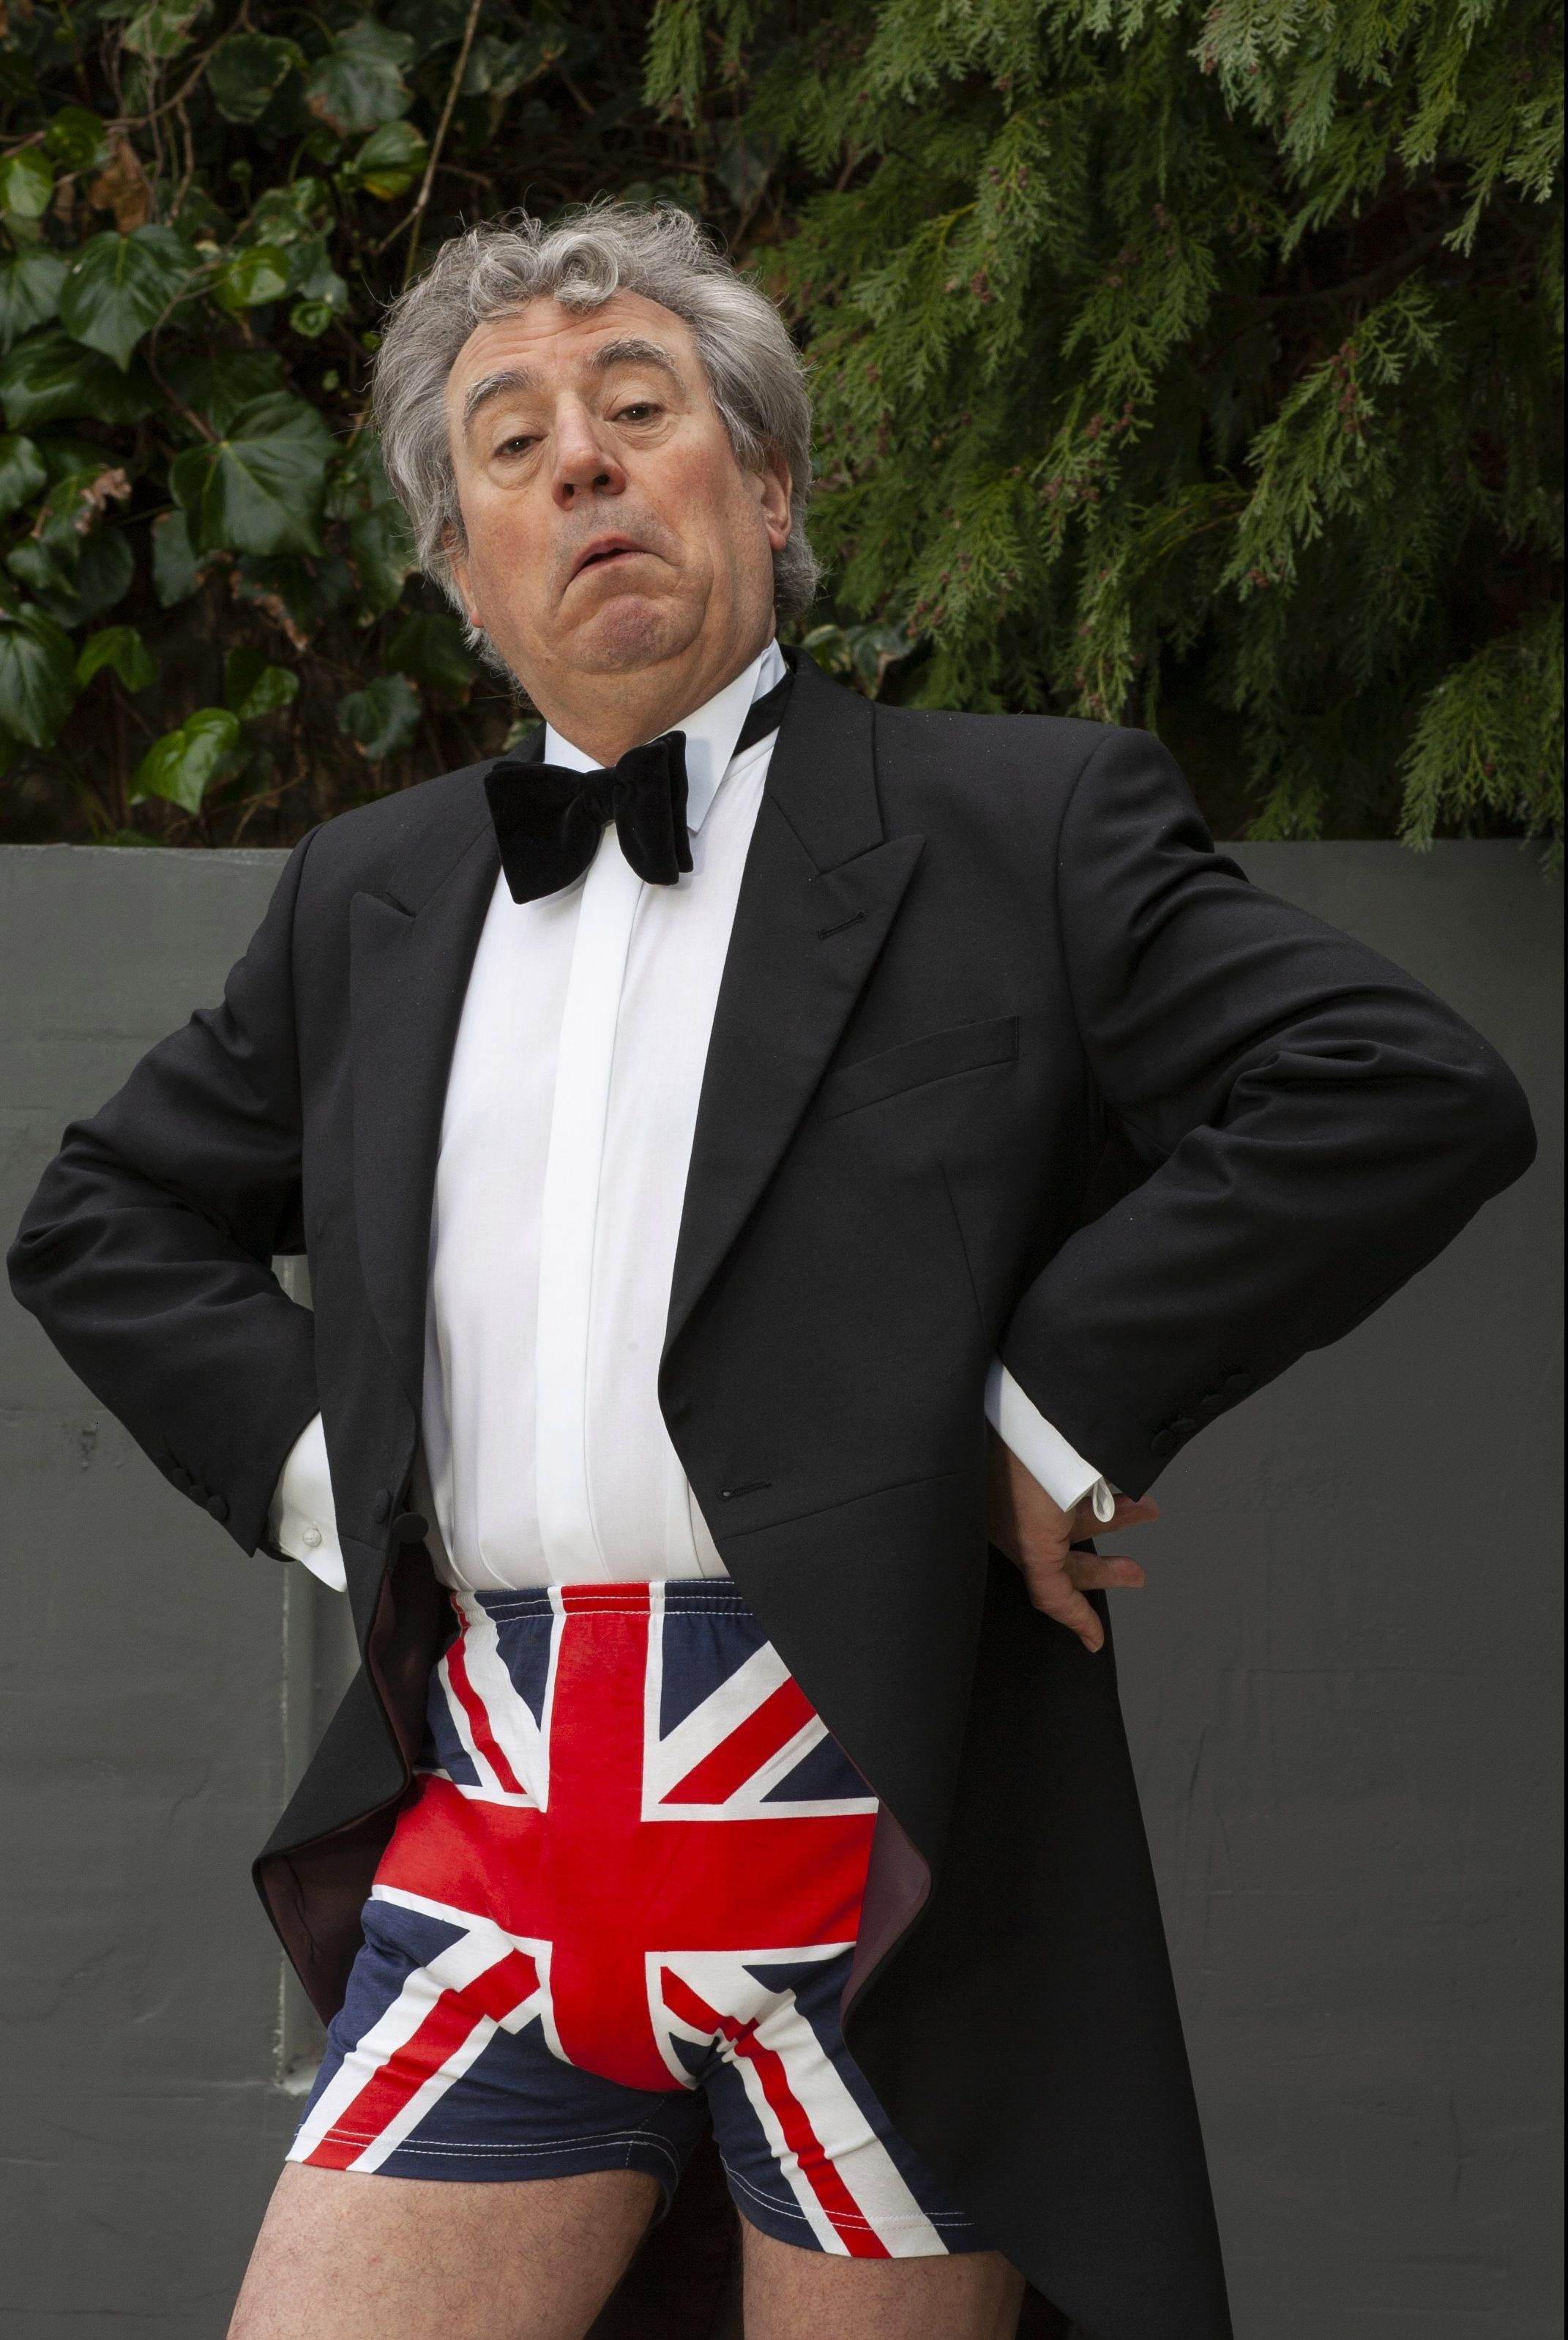 Terry Jones was a writer, comedian, screenwriter and film director